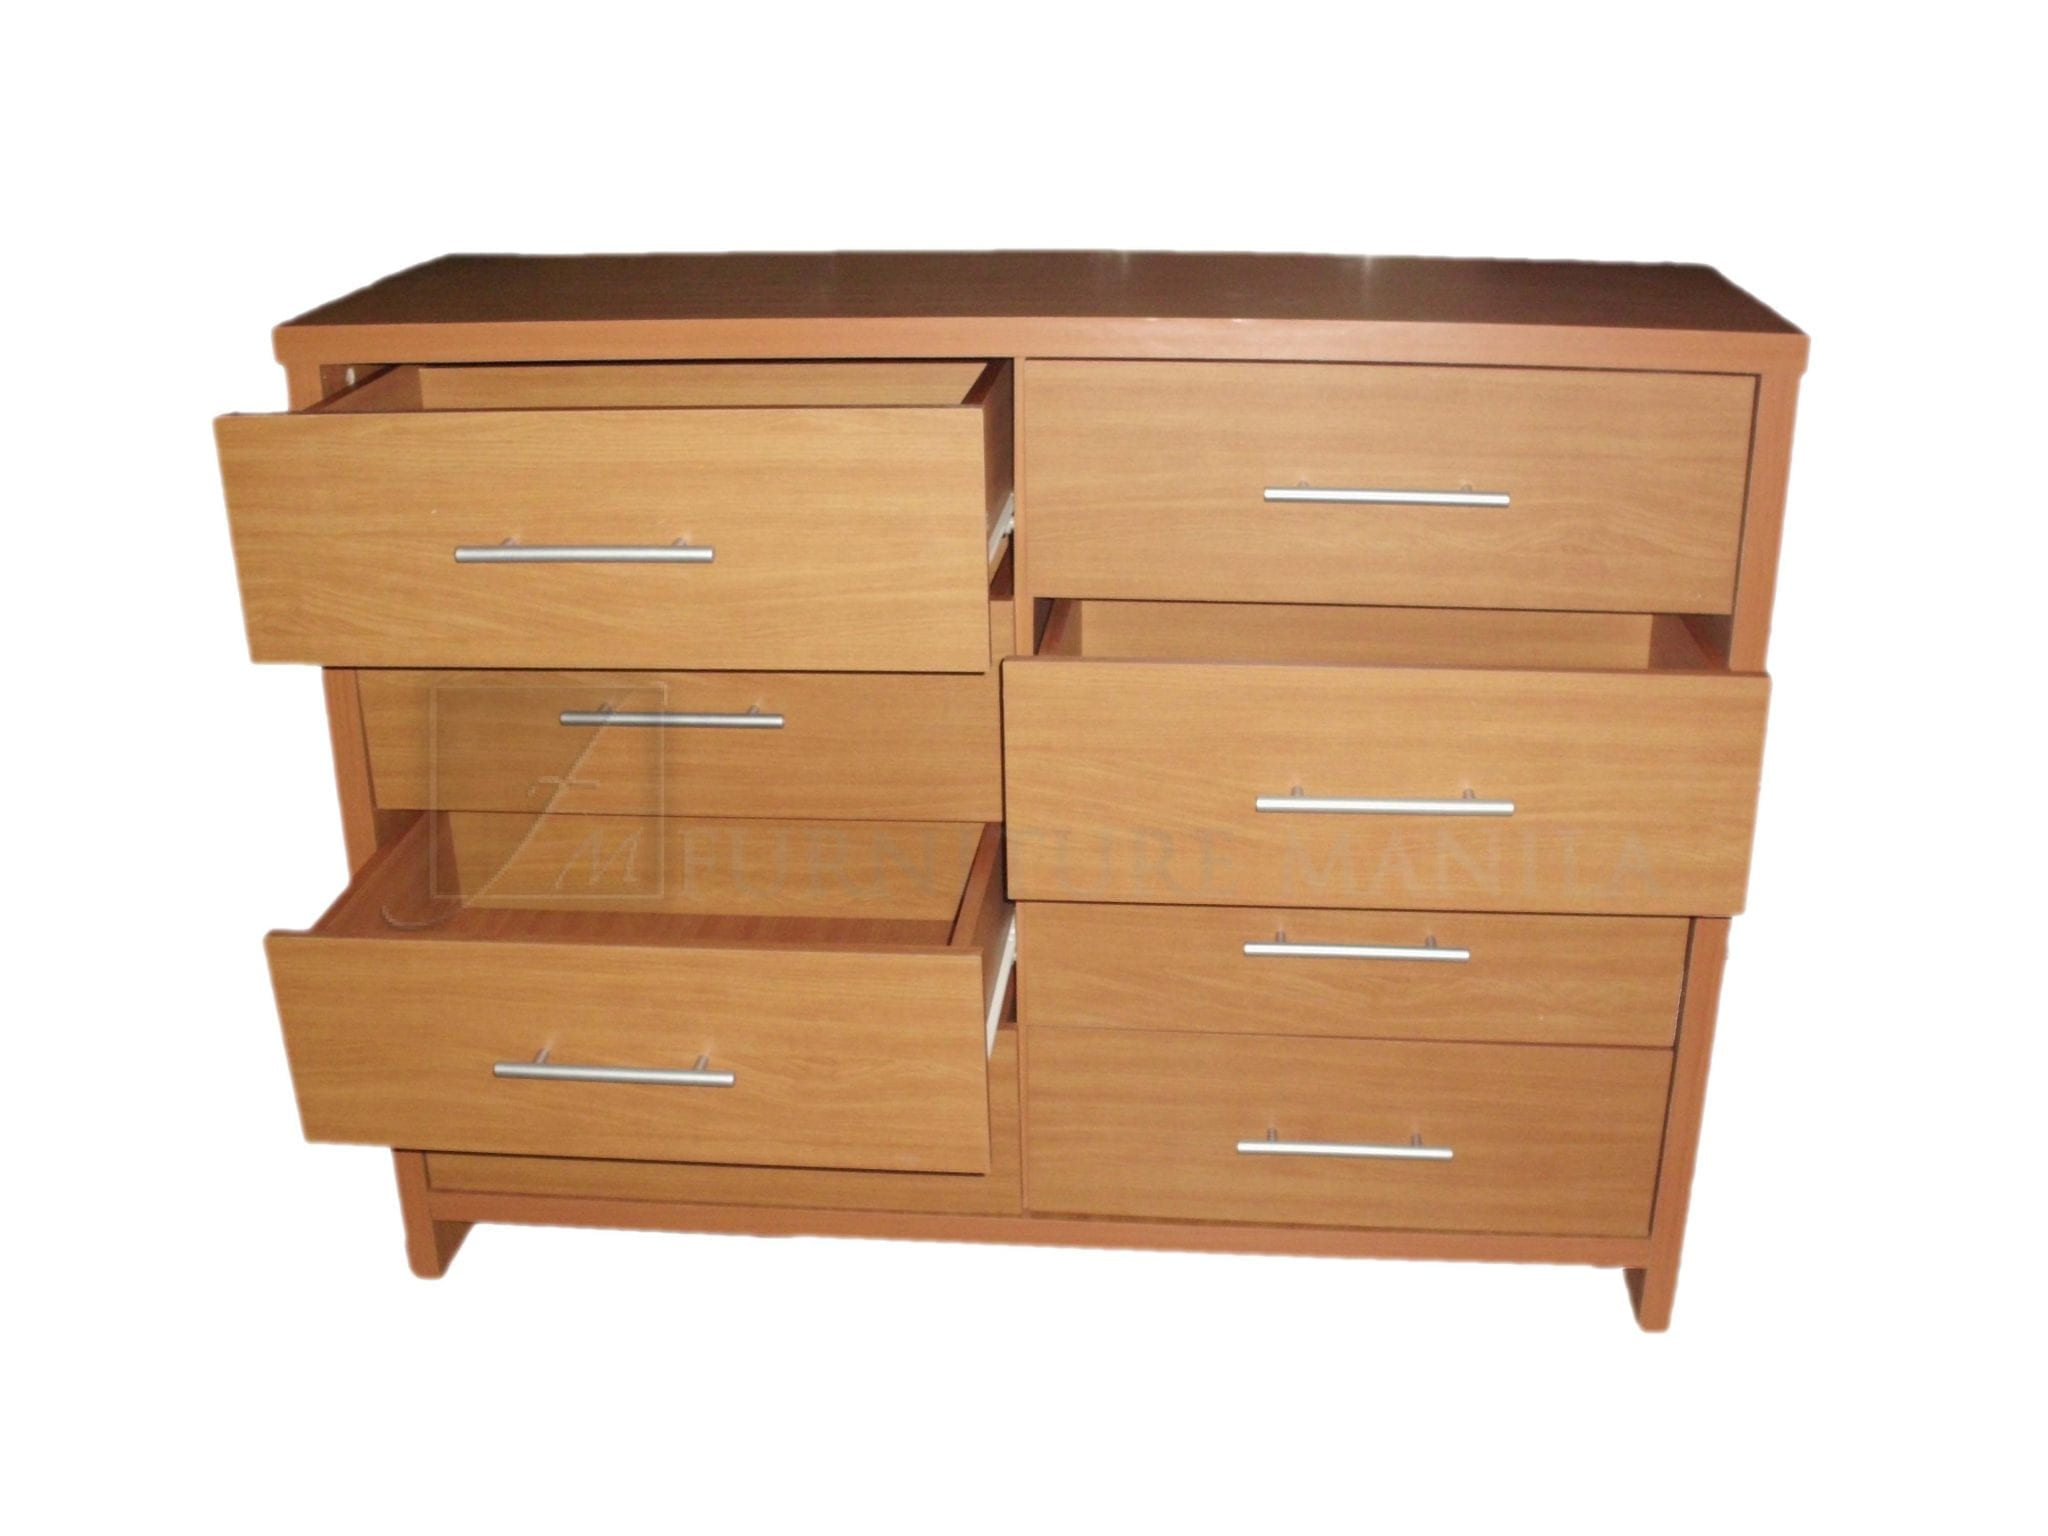 T d chest of drawers home office furniture philippines